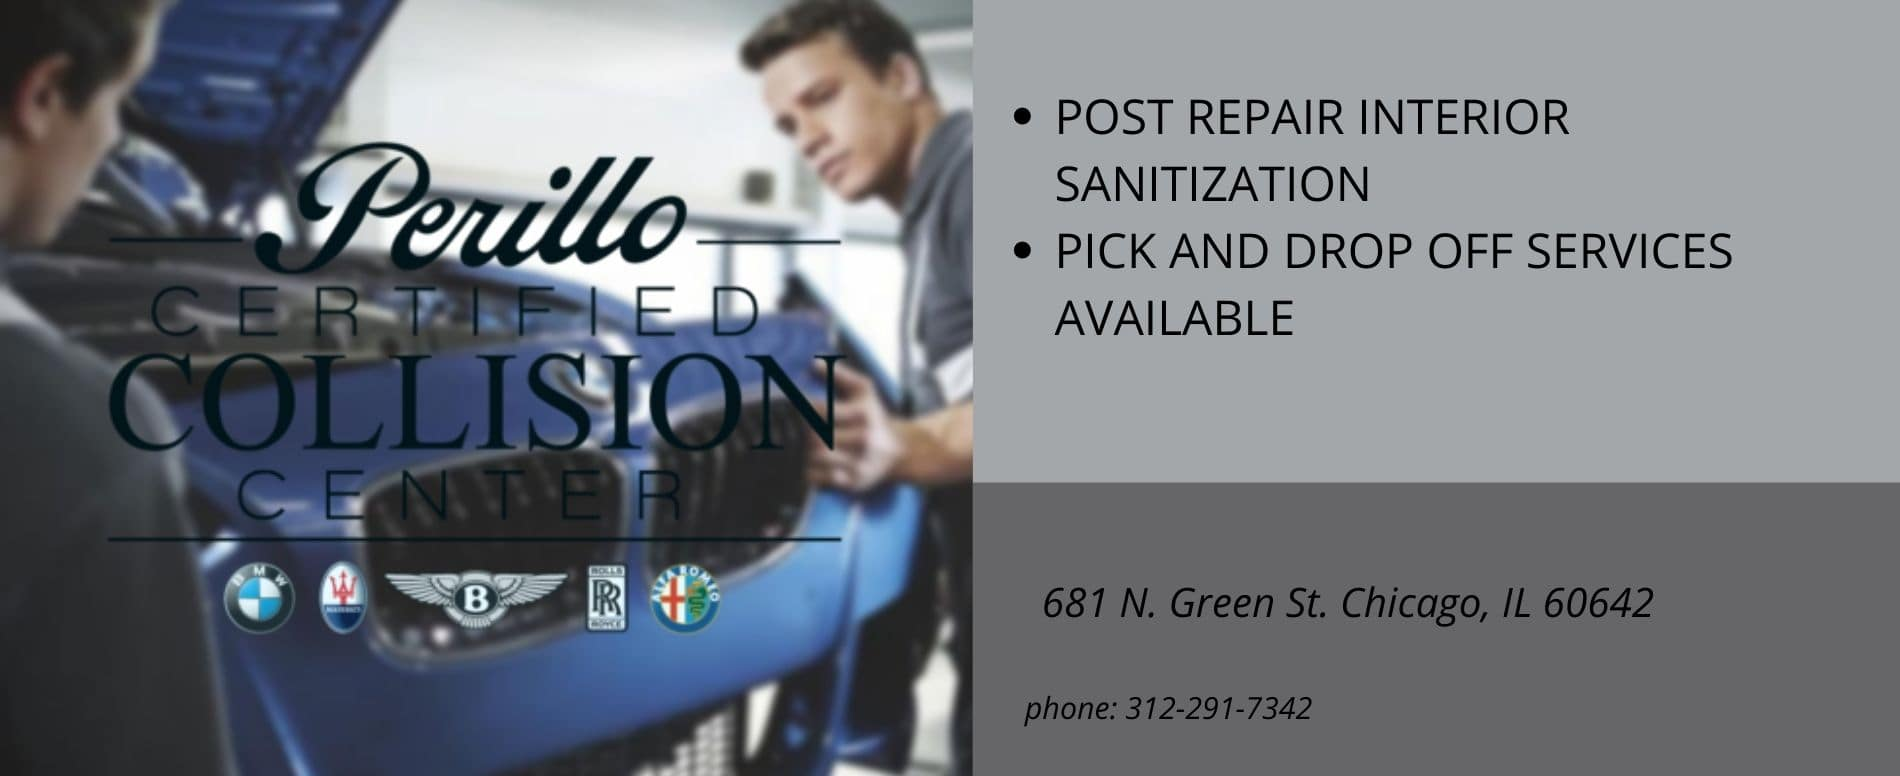 POST REPAIR INTERIOR SANITIZATION AND PICK AND DROP OFF SERVICES AVAILABLE